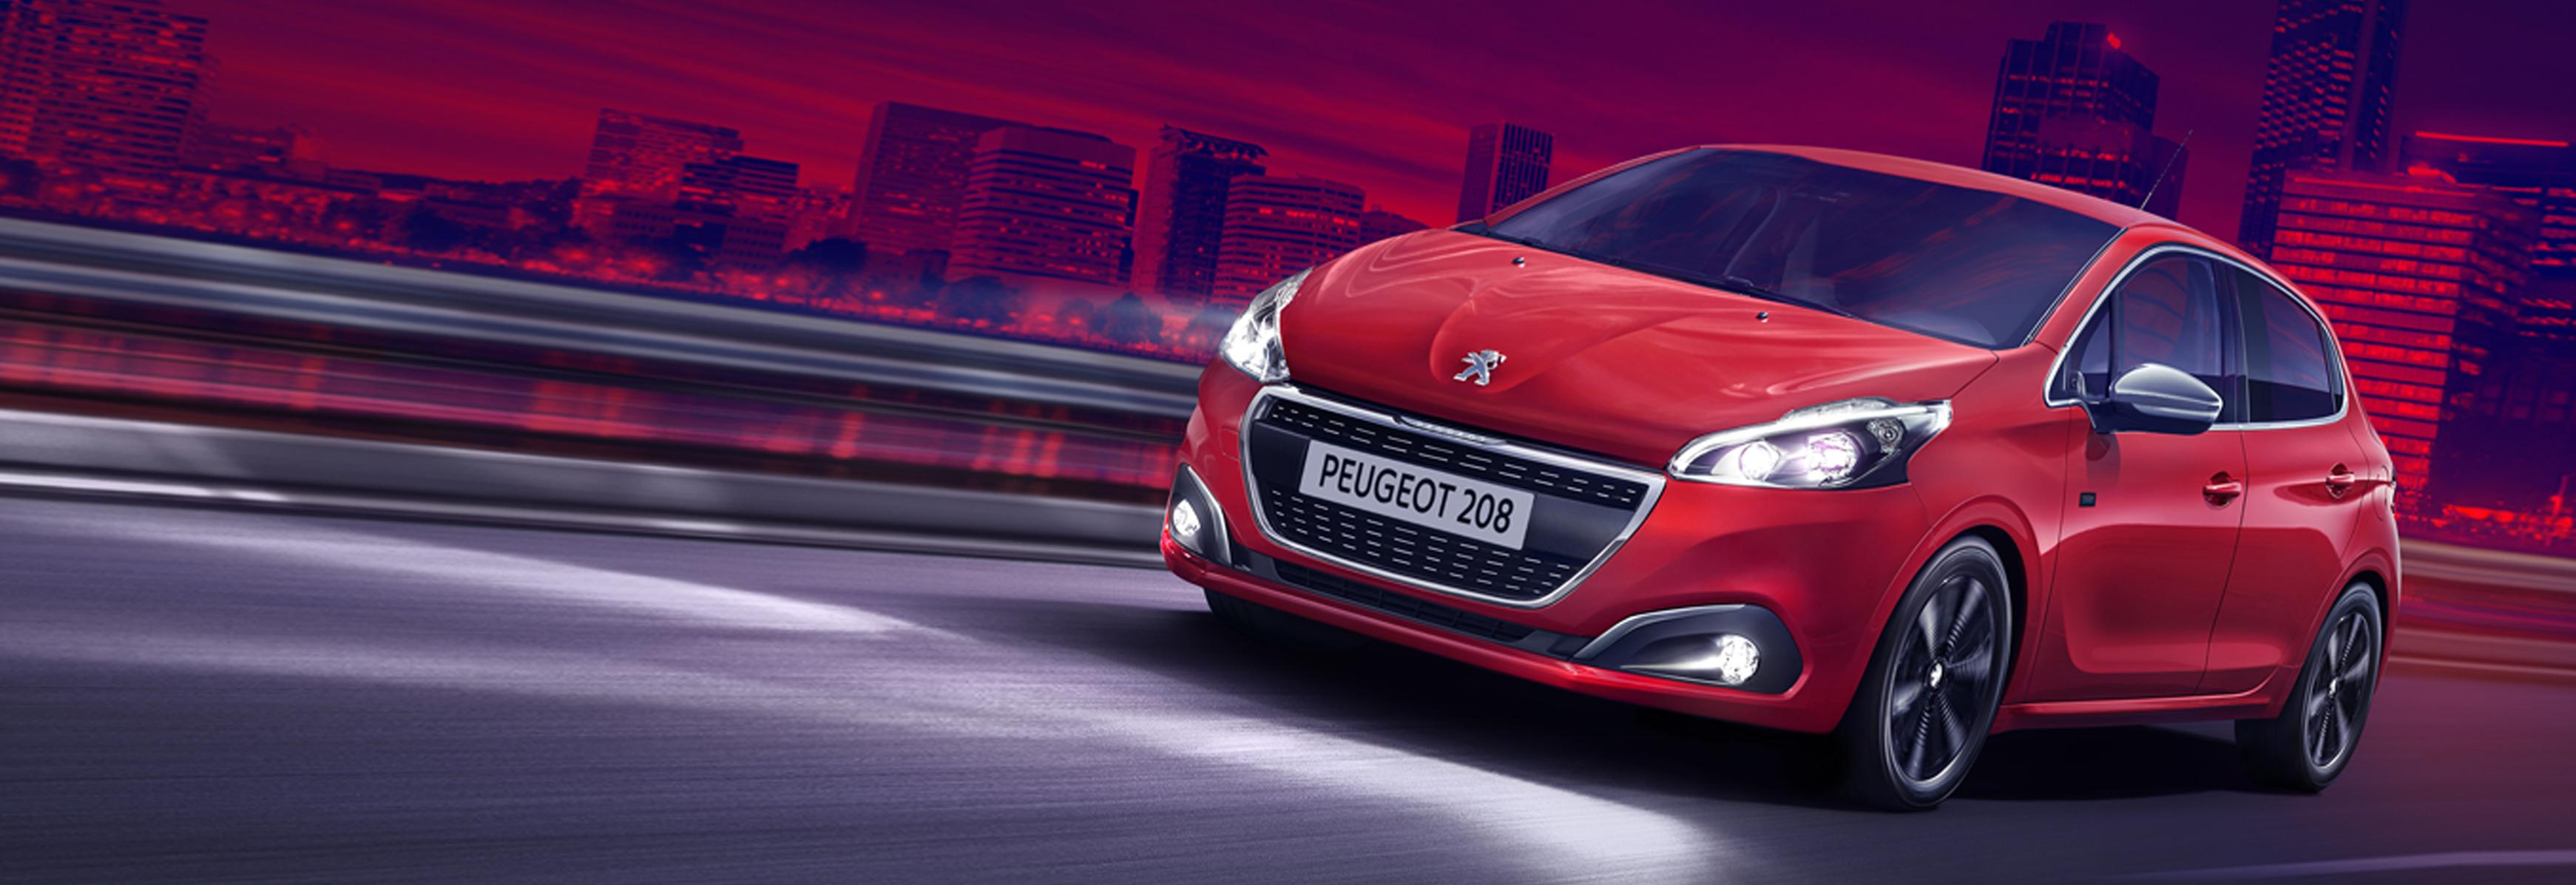 New Peugeot 208 for £149 per Month